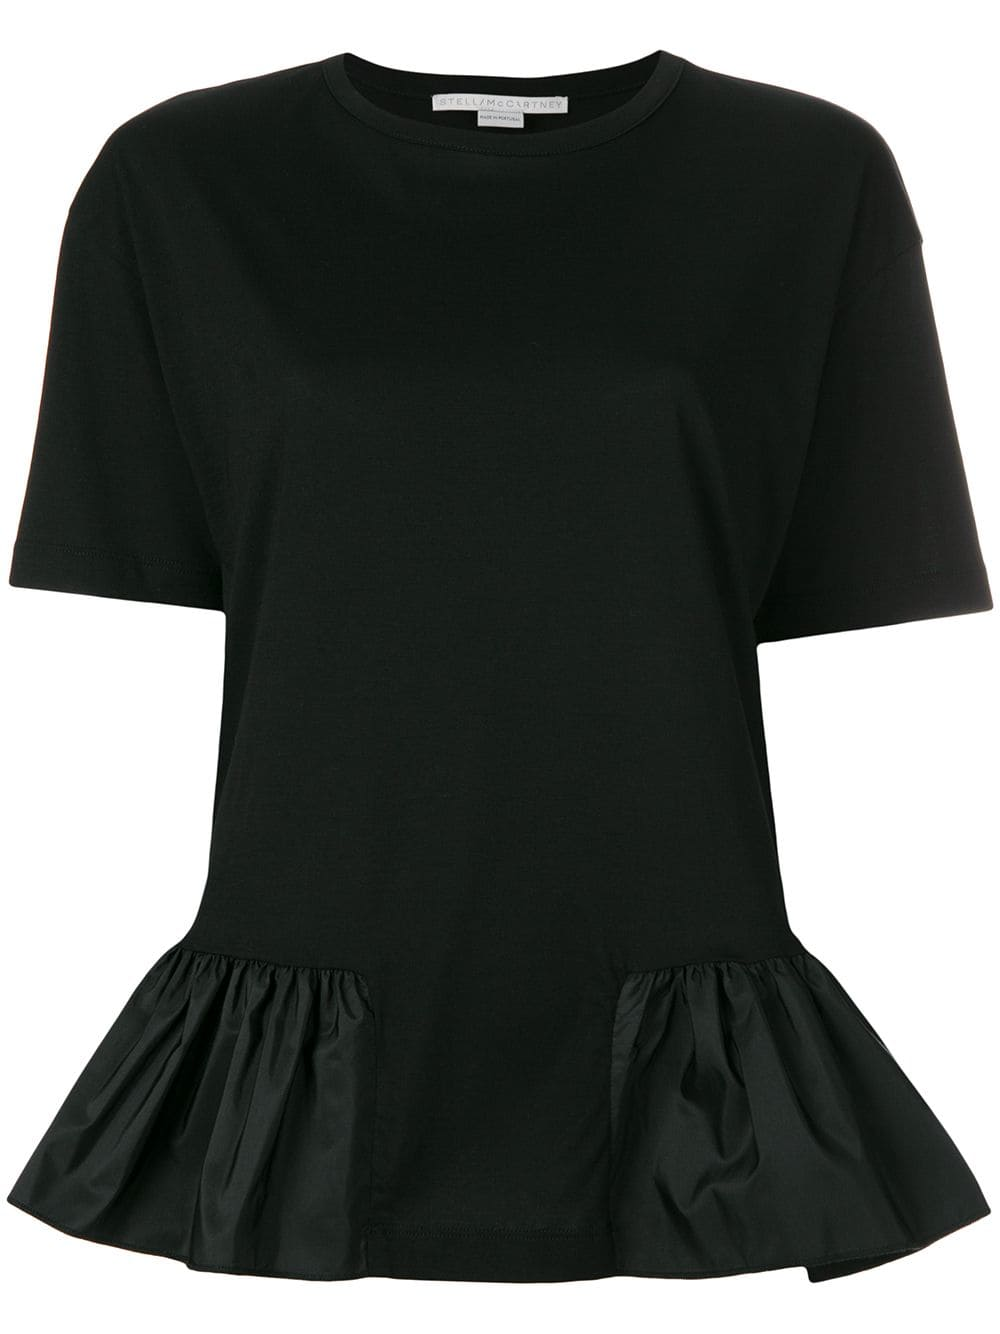 a80fdd5bb23 stella-mccartney-ruffle-trim-t-shirt-black-farfetch-com-photo.jpg 1547544352